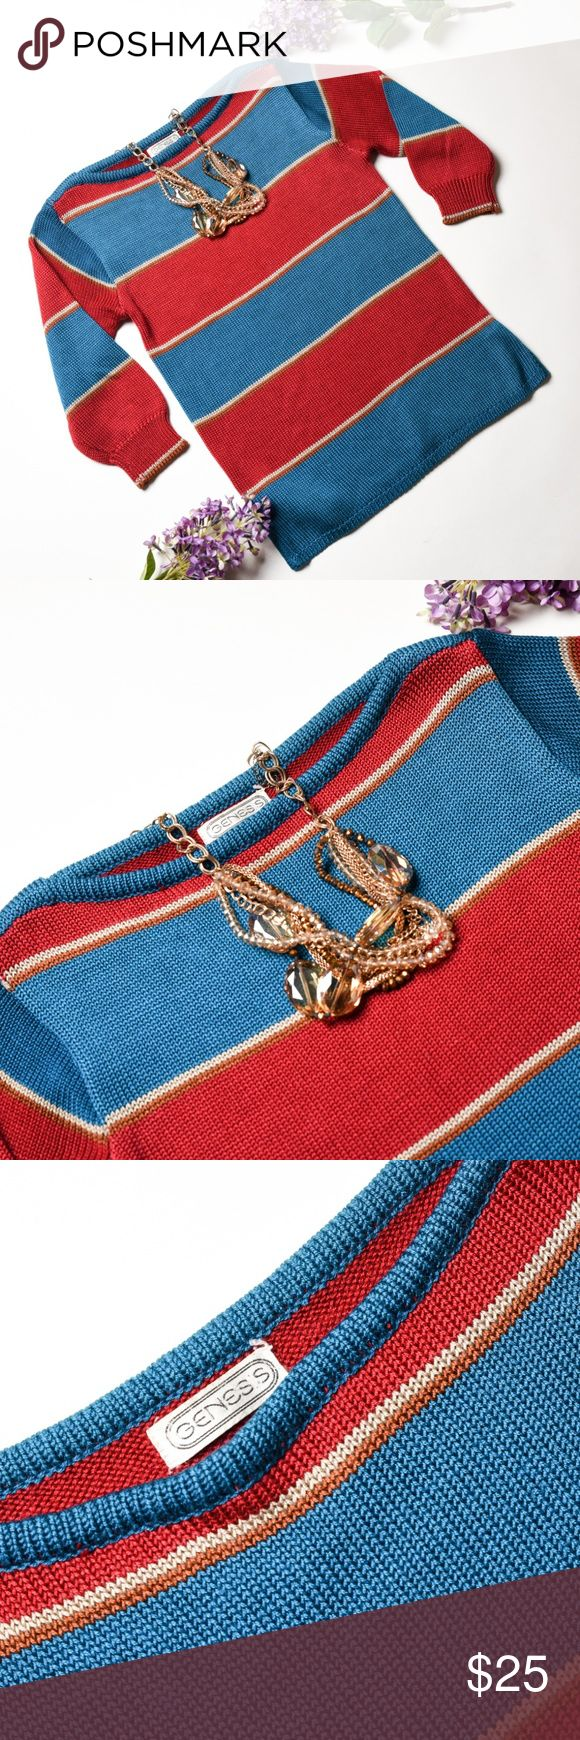 GENESIS Blue/Red Striped Knit Sweater - Size S Beautiful Sweater! Wear it with a lovely statement necklace and jeans, for a casual and modern look.  •Size Small •Pre Owned in great condition •No pets, Non Smoker Home •Bundle with at least one more item for a private discount! Genesis Sweaters